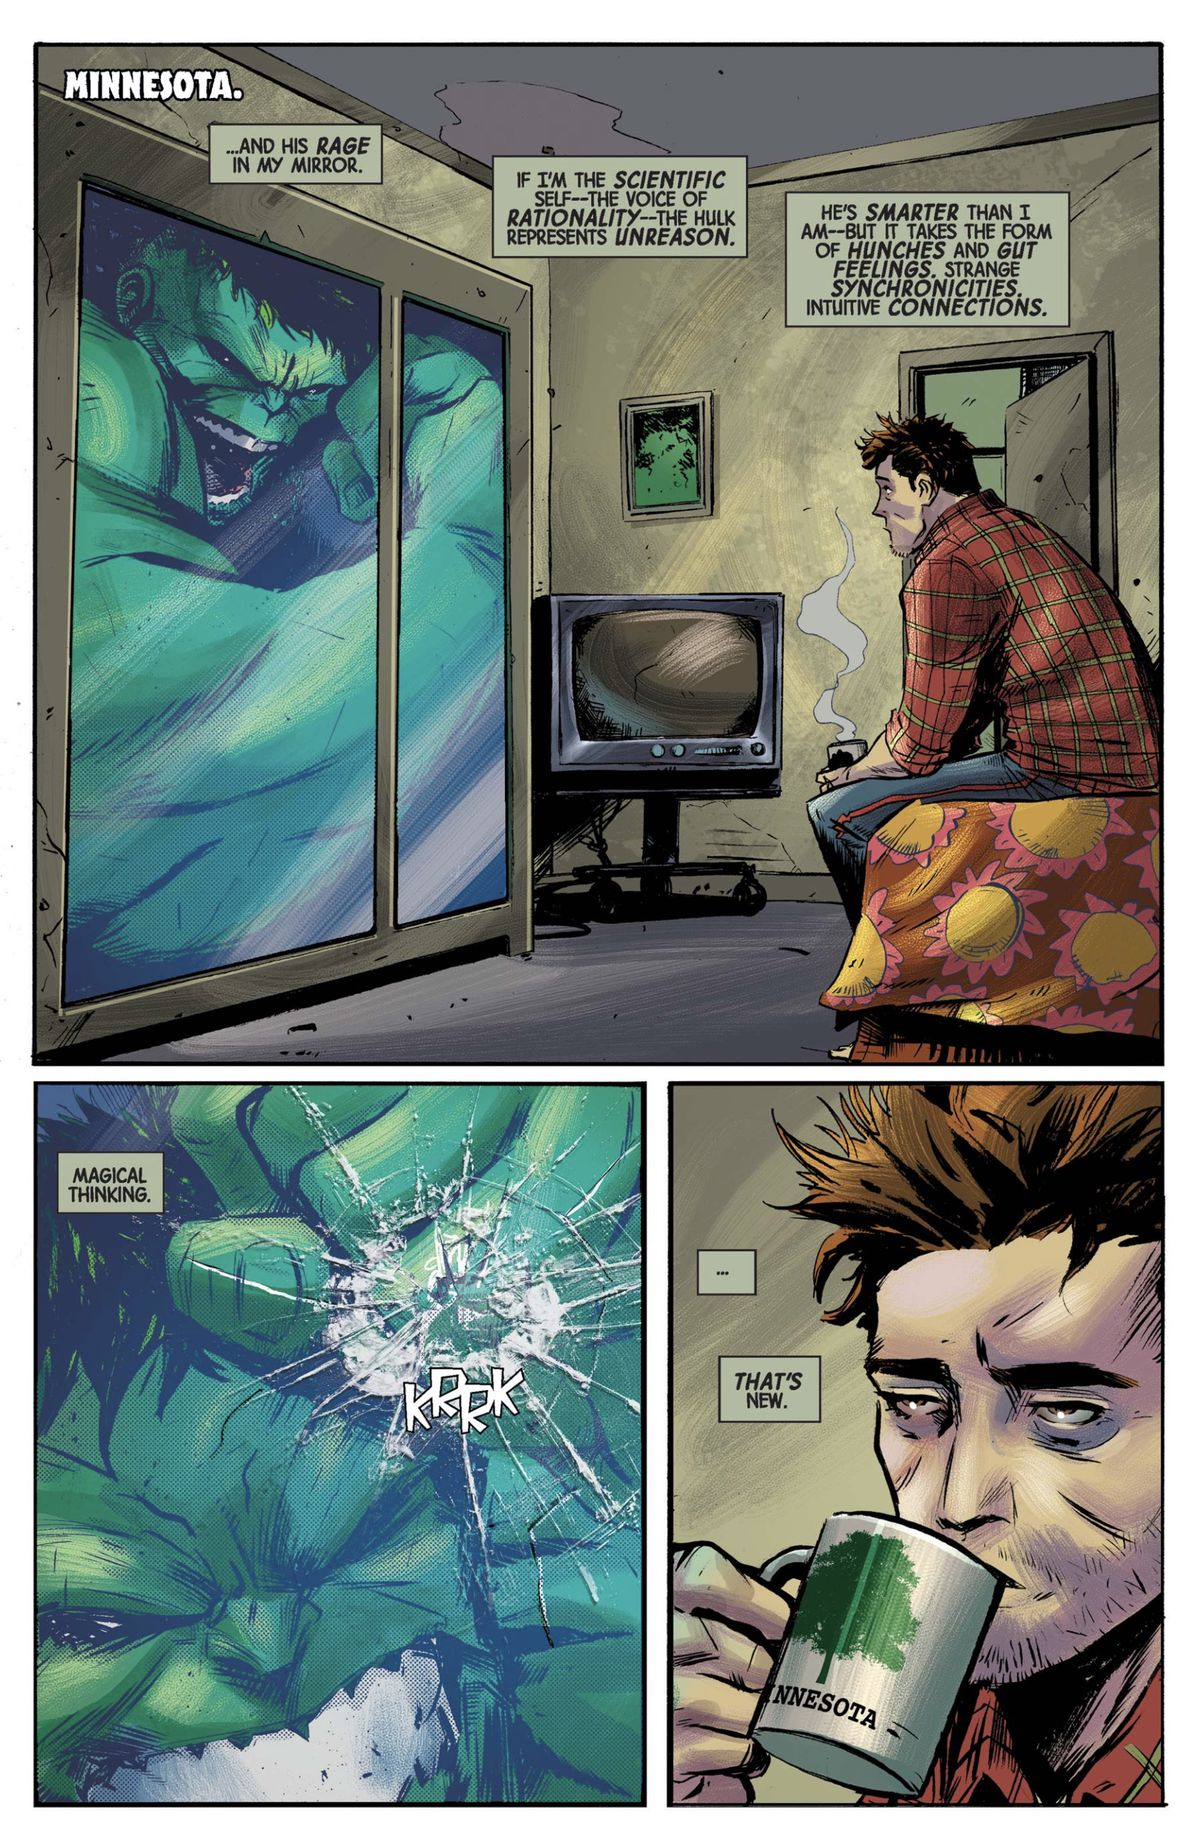 hulk is trapped in a motel window trying to break the glass